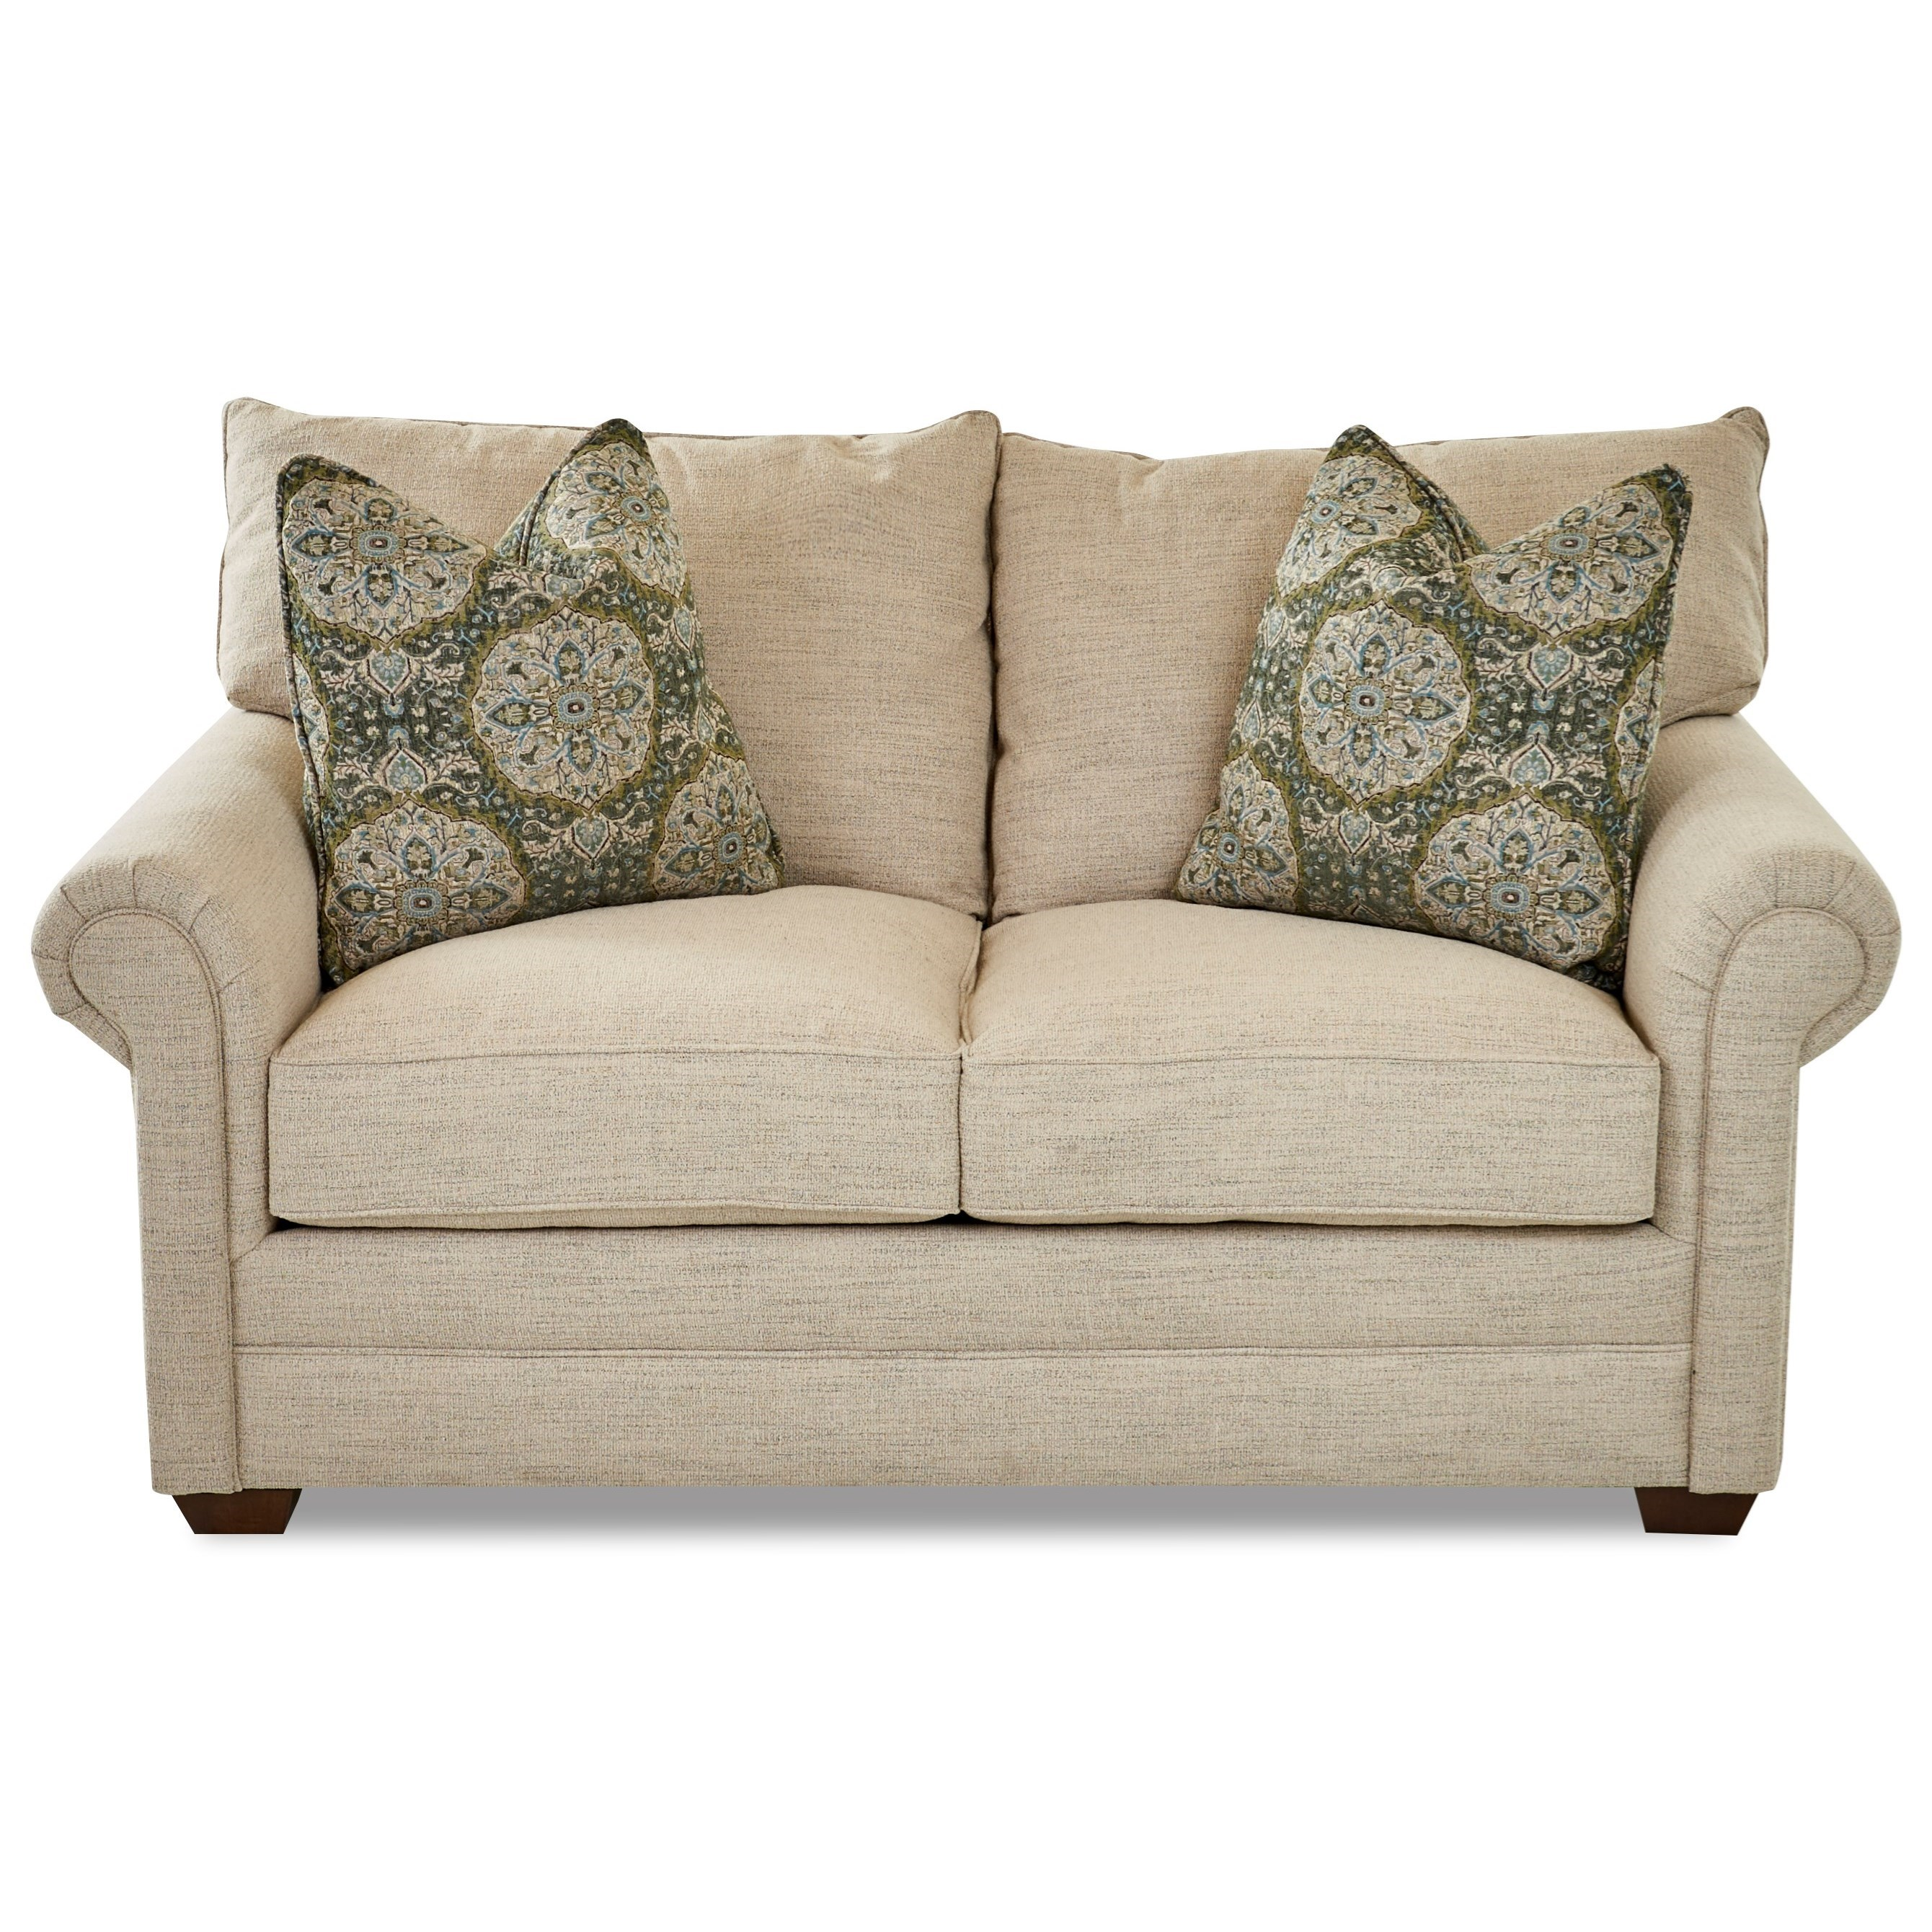 Huntley Loveseat by Klaussner at Northeast Factory Direct